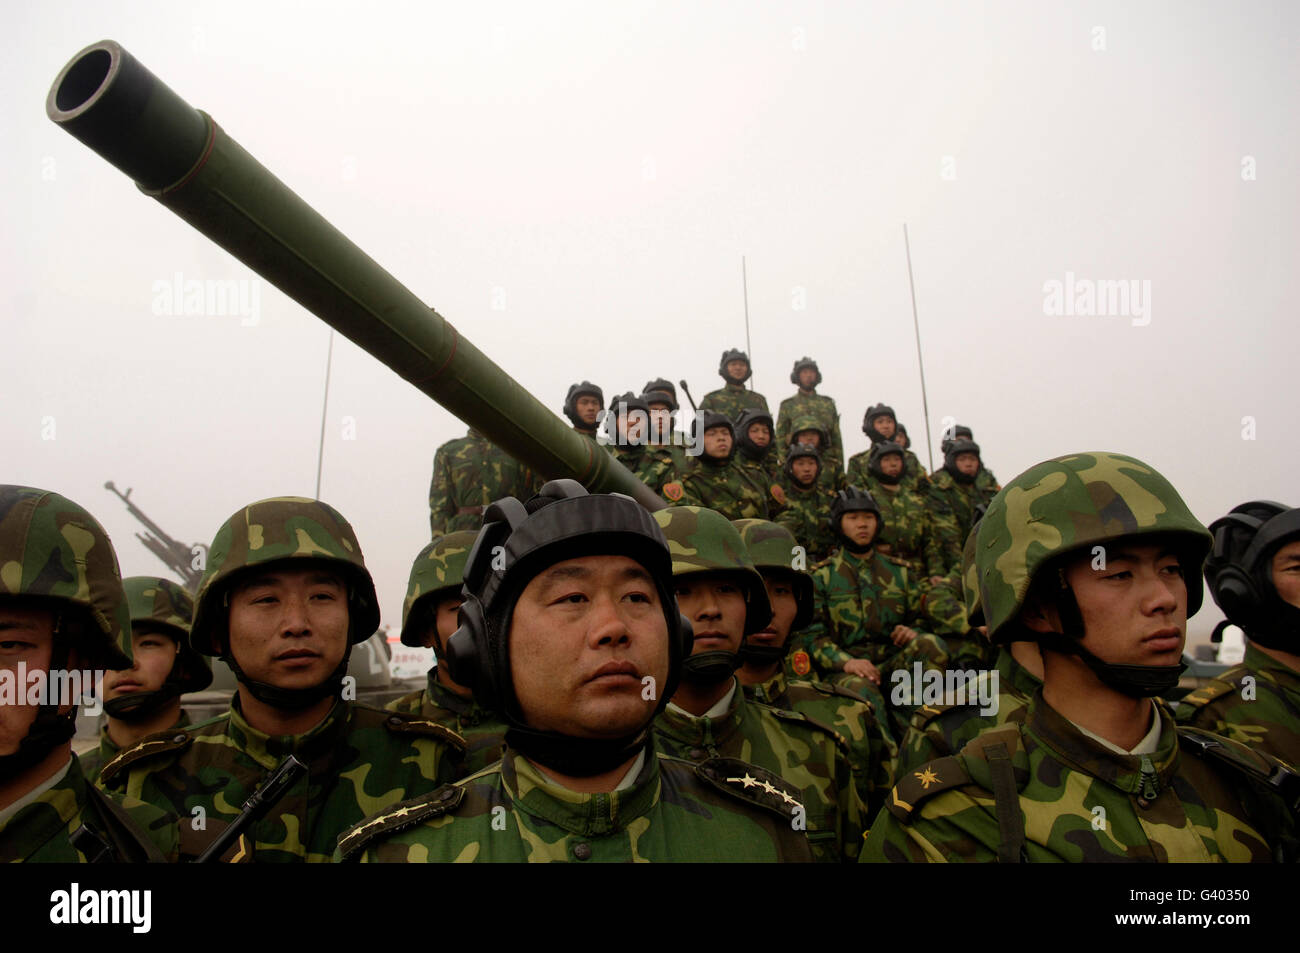 Chinese tanker soldiers with the People's Liberation Army. Stock Photo